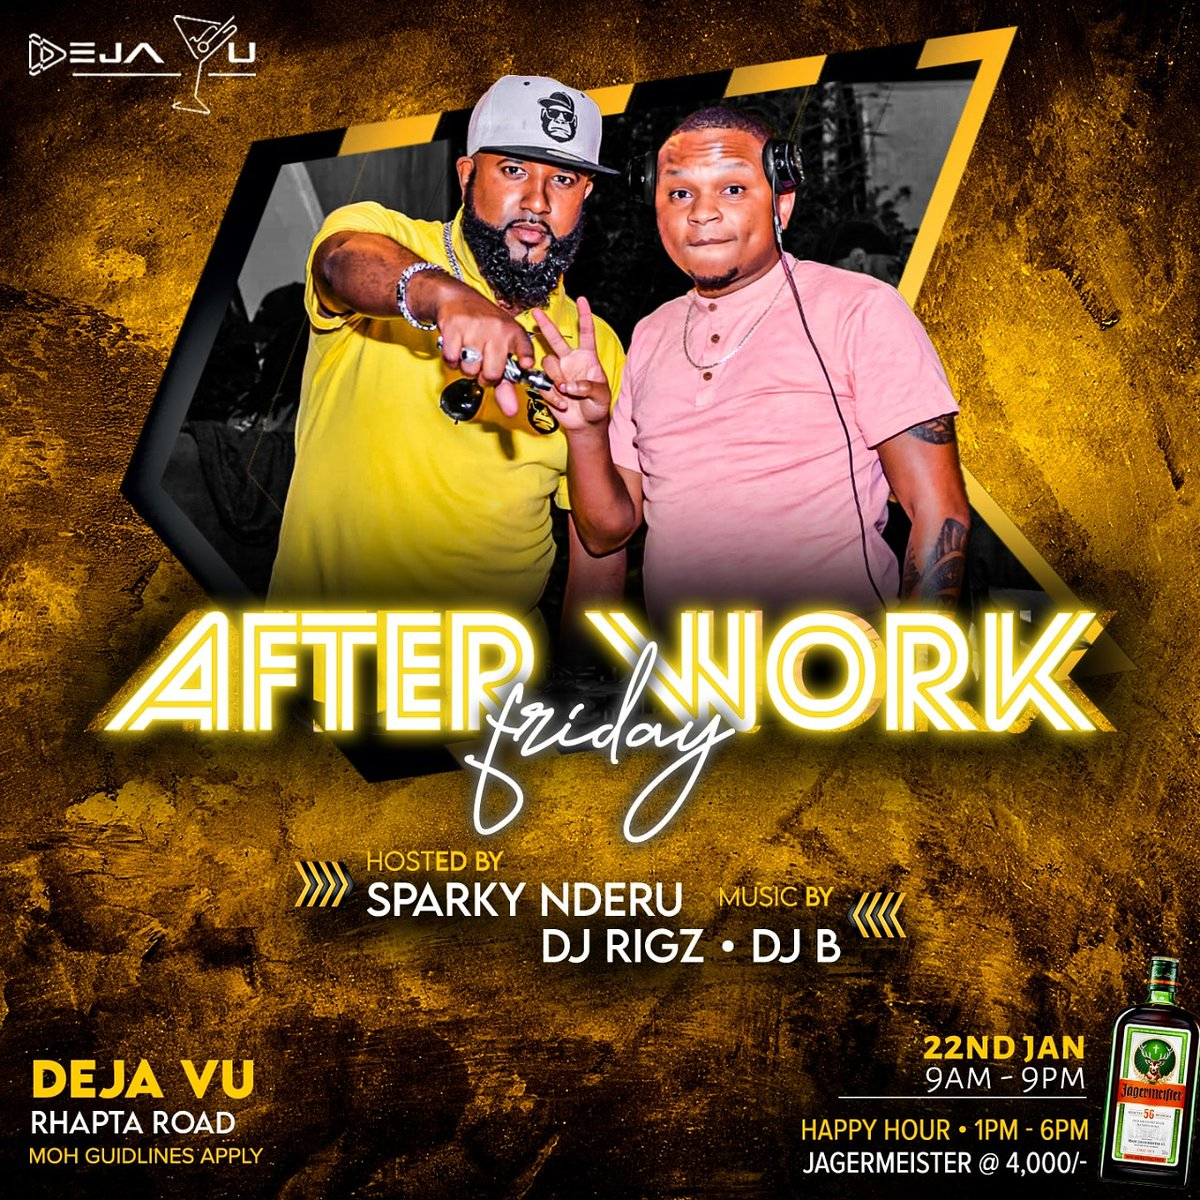 #Afterwork FRIDAY @dejavuloungeke_ hosted by @sparkynderu #PARTY @deejayrigz @selekta_djb The Crowd Entertainer-Connecting people through music